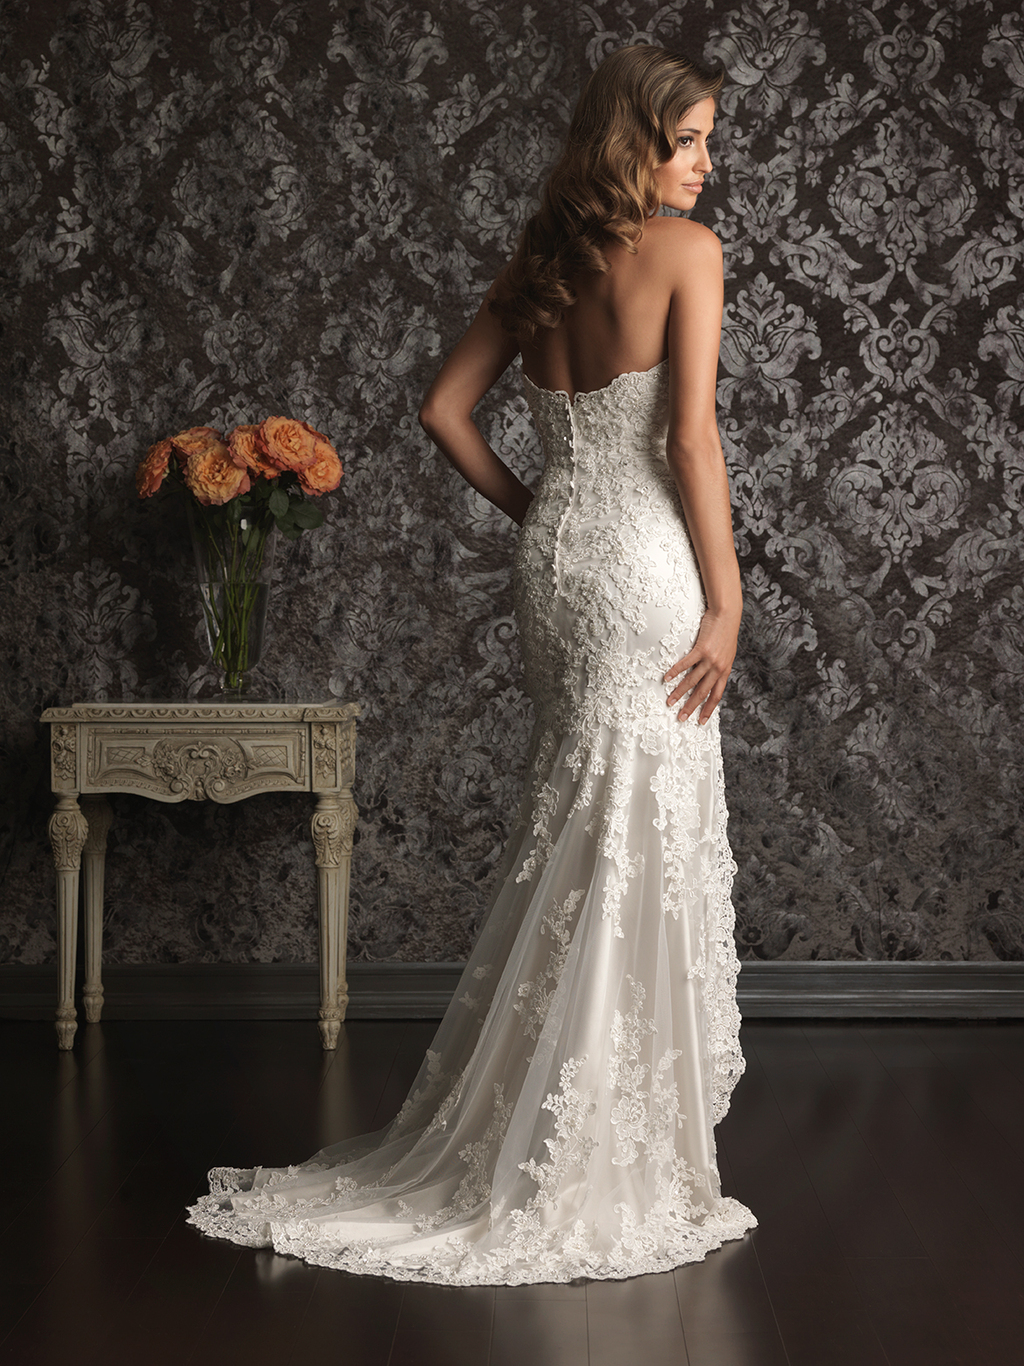 Allure-bridals-wedding-dress-bridal-gown-allure-collection-2013-9008b.full